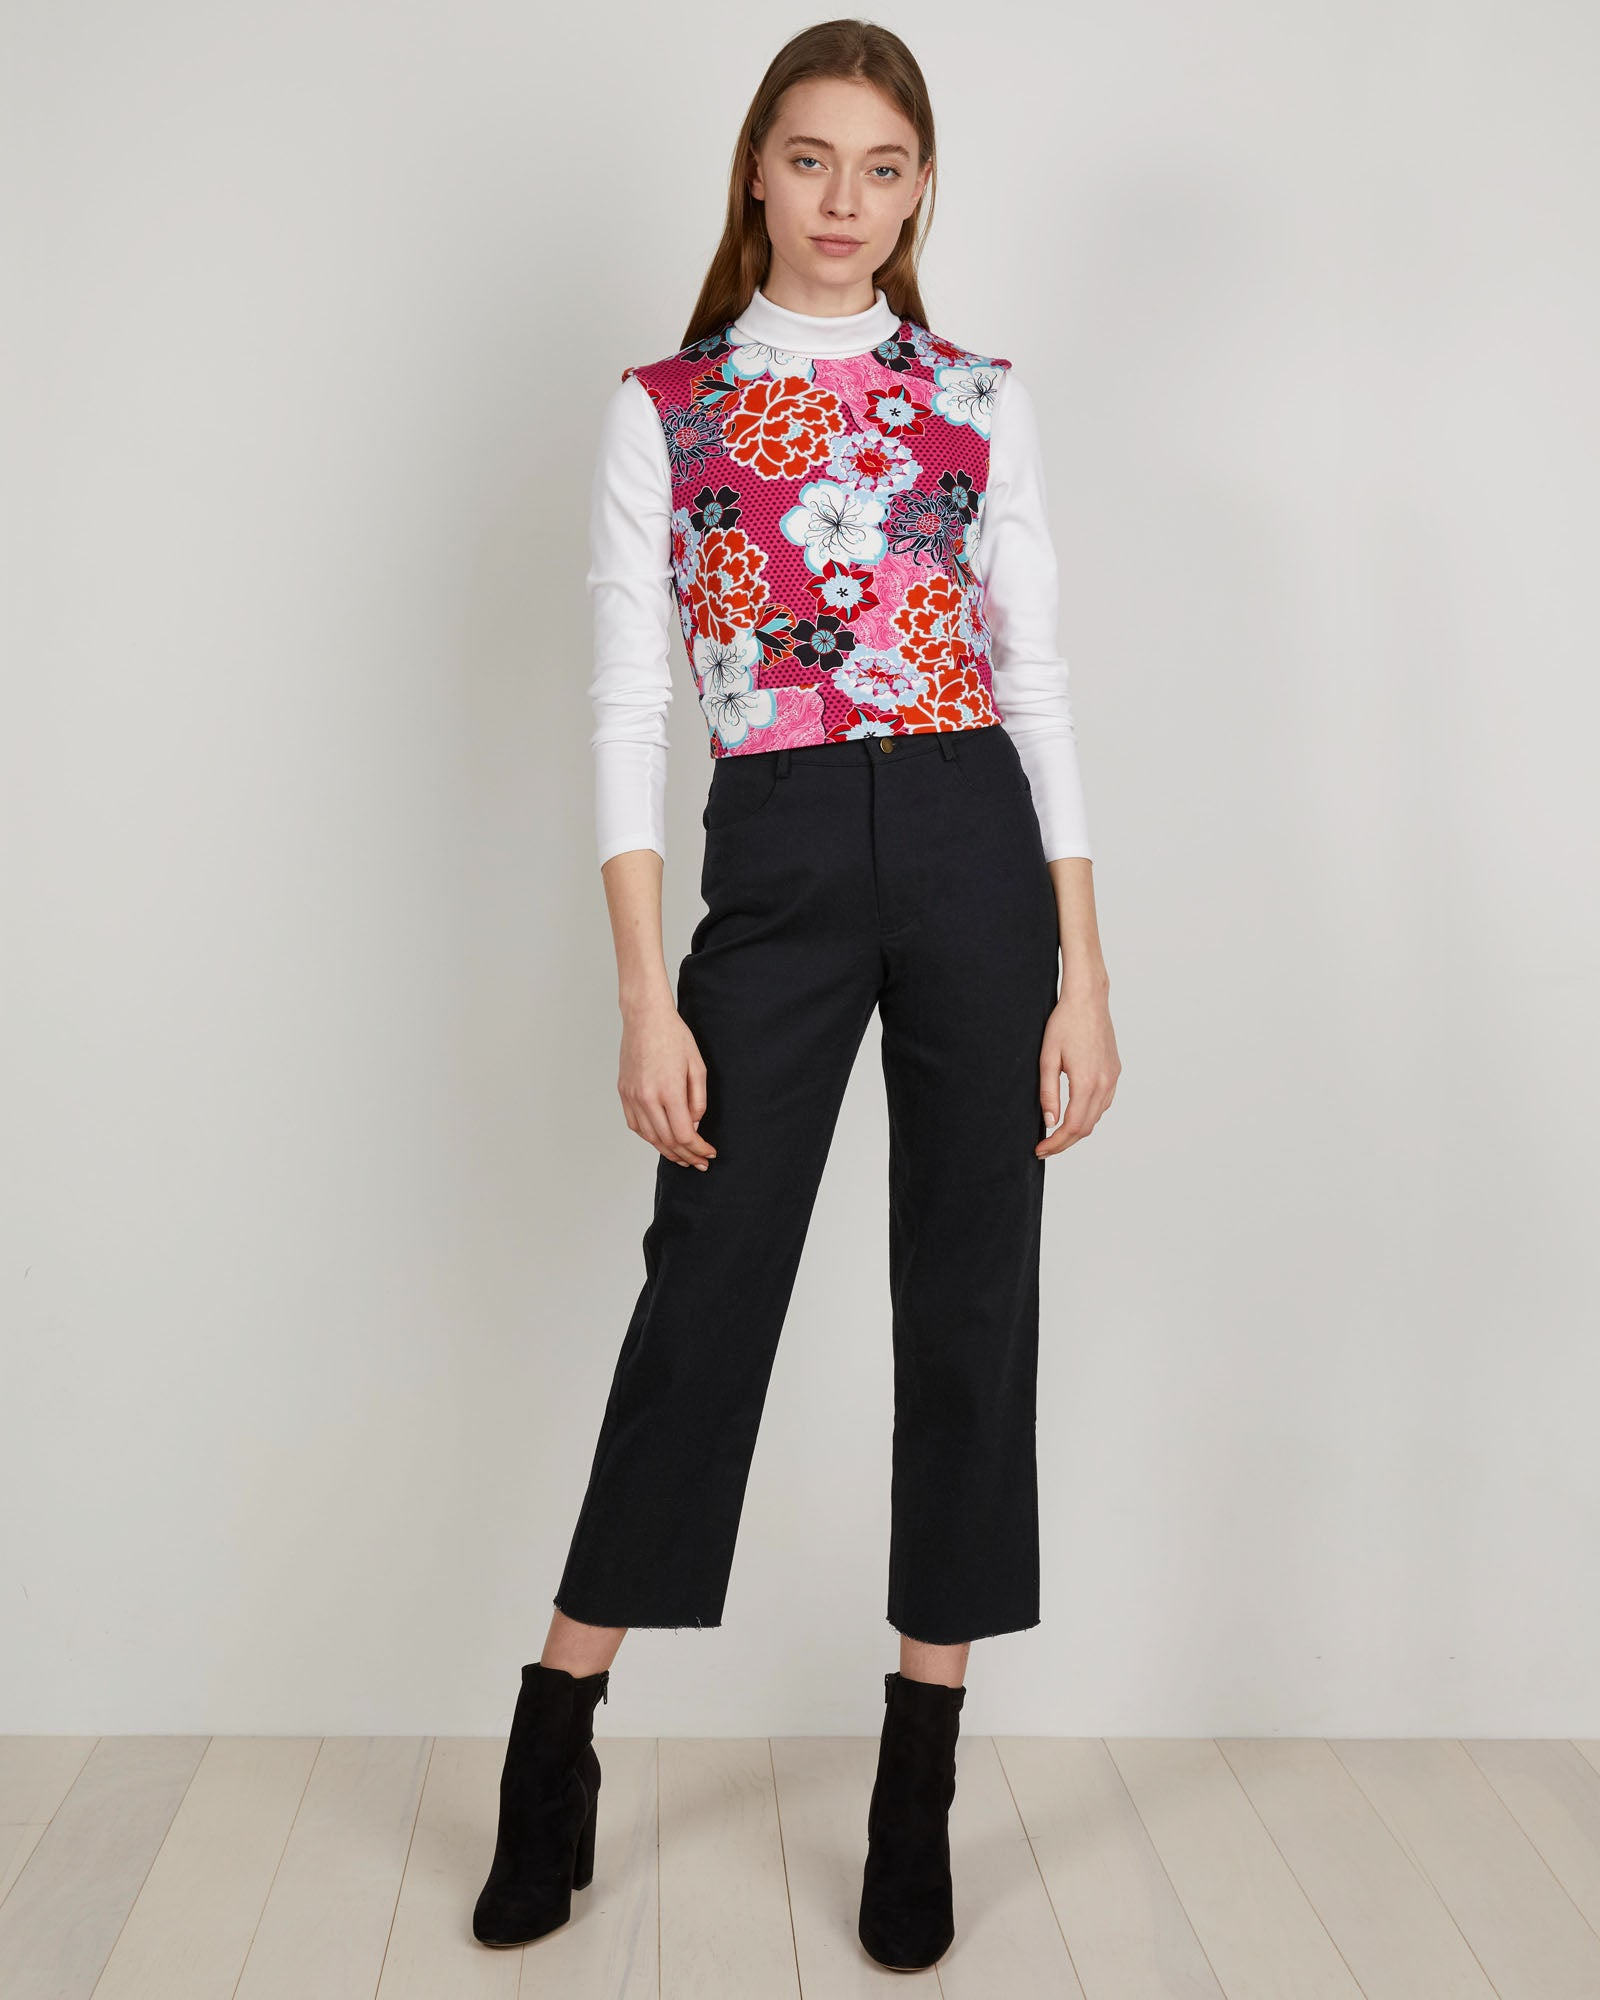 THE KIT's Leah Vest under white turtleneck in Pink Pop Floral print is a seasonless layering piece that hits at the natural waist with a fitted silhouette. Centerback zipper hardware and a spongey heavy rayon.